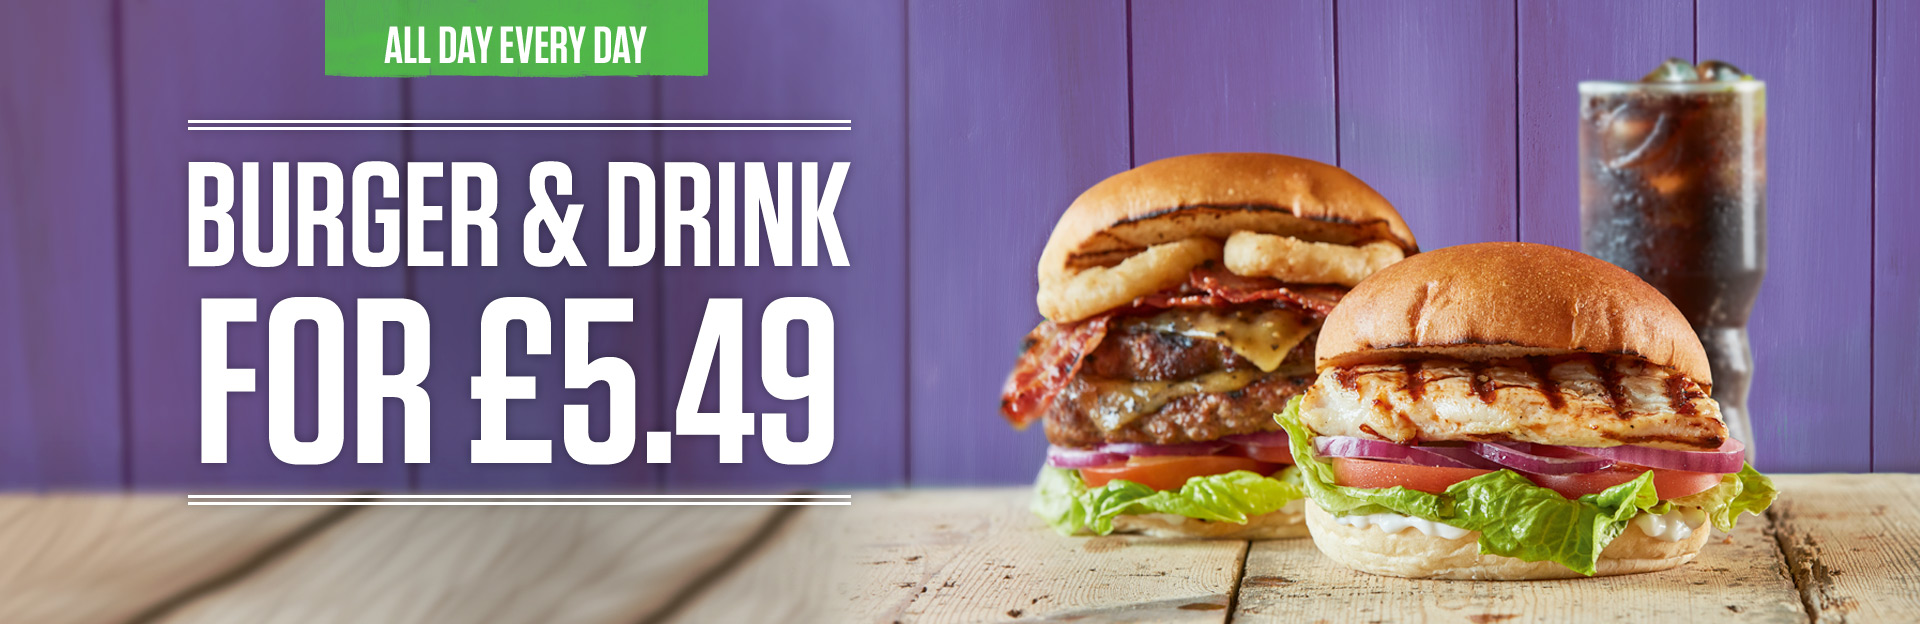 Burger and Drink Deal at The Avenue